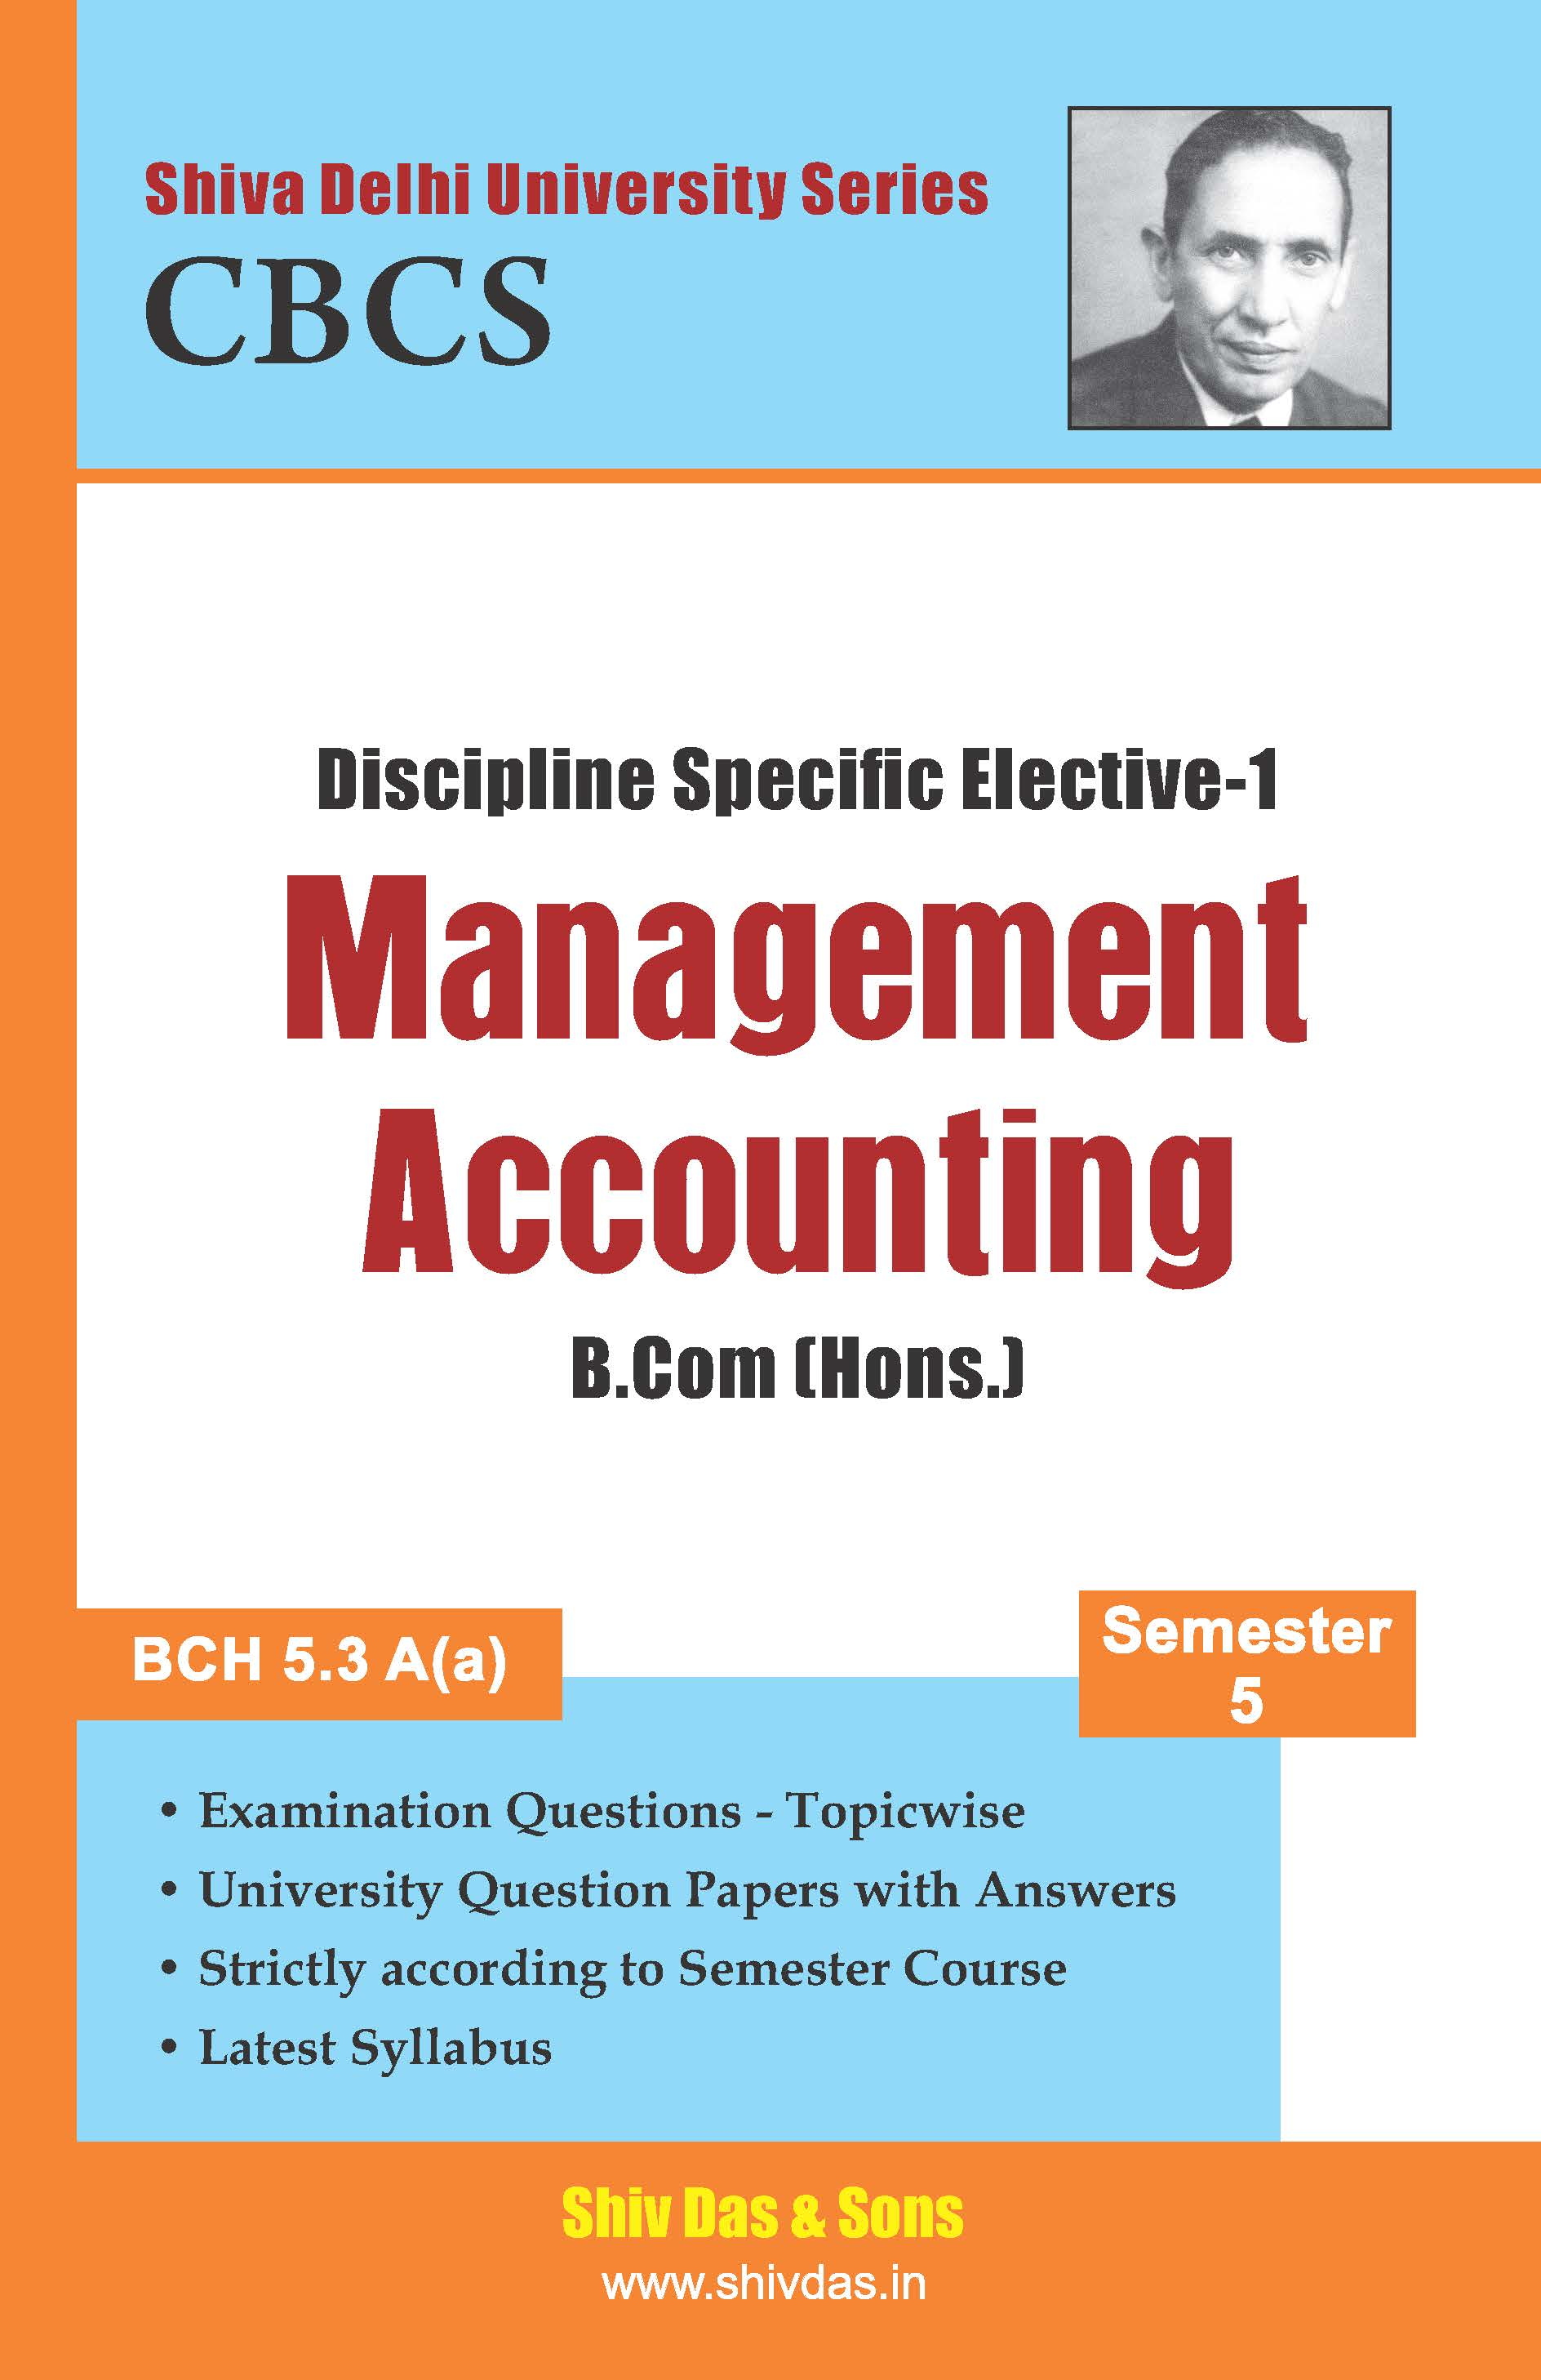 B.Com [Hons.] Semester-5 Management Accounting